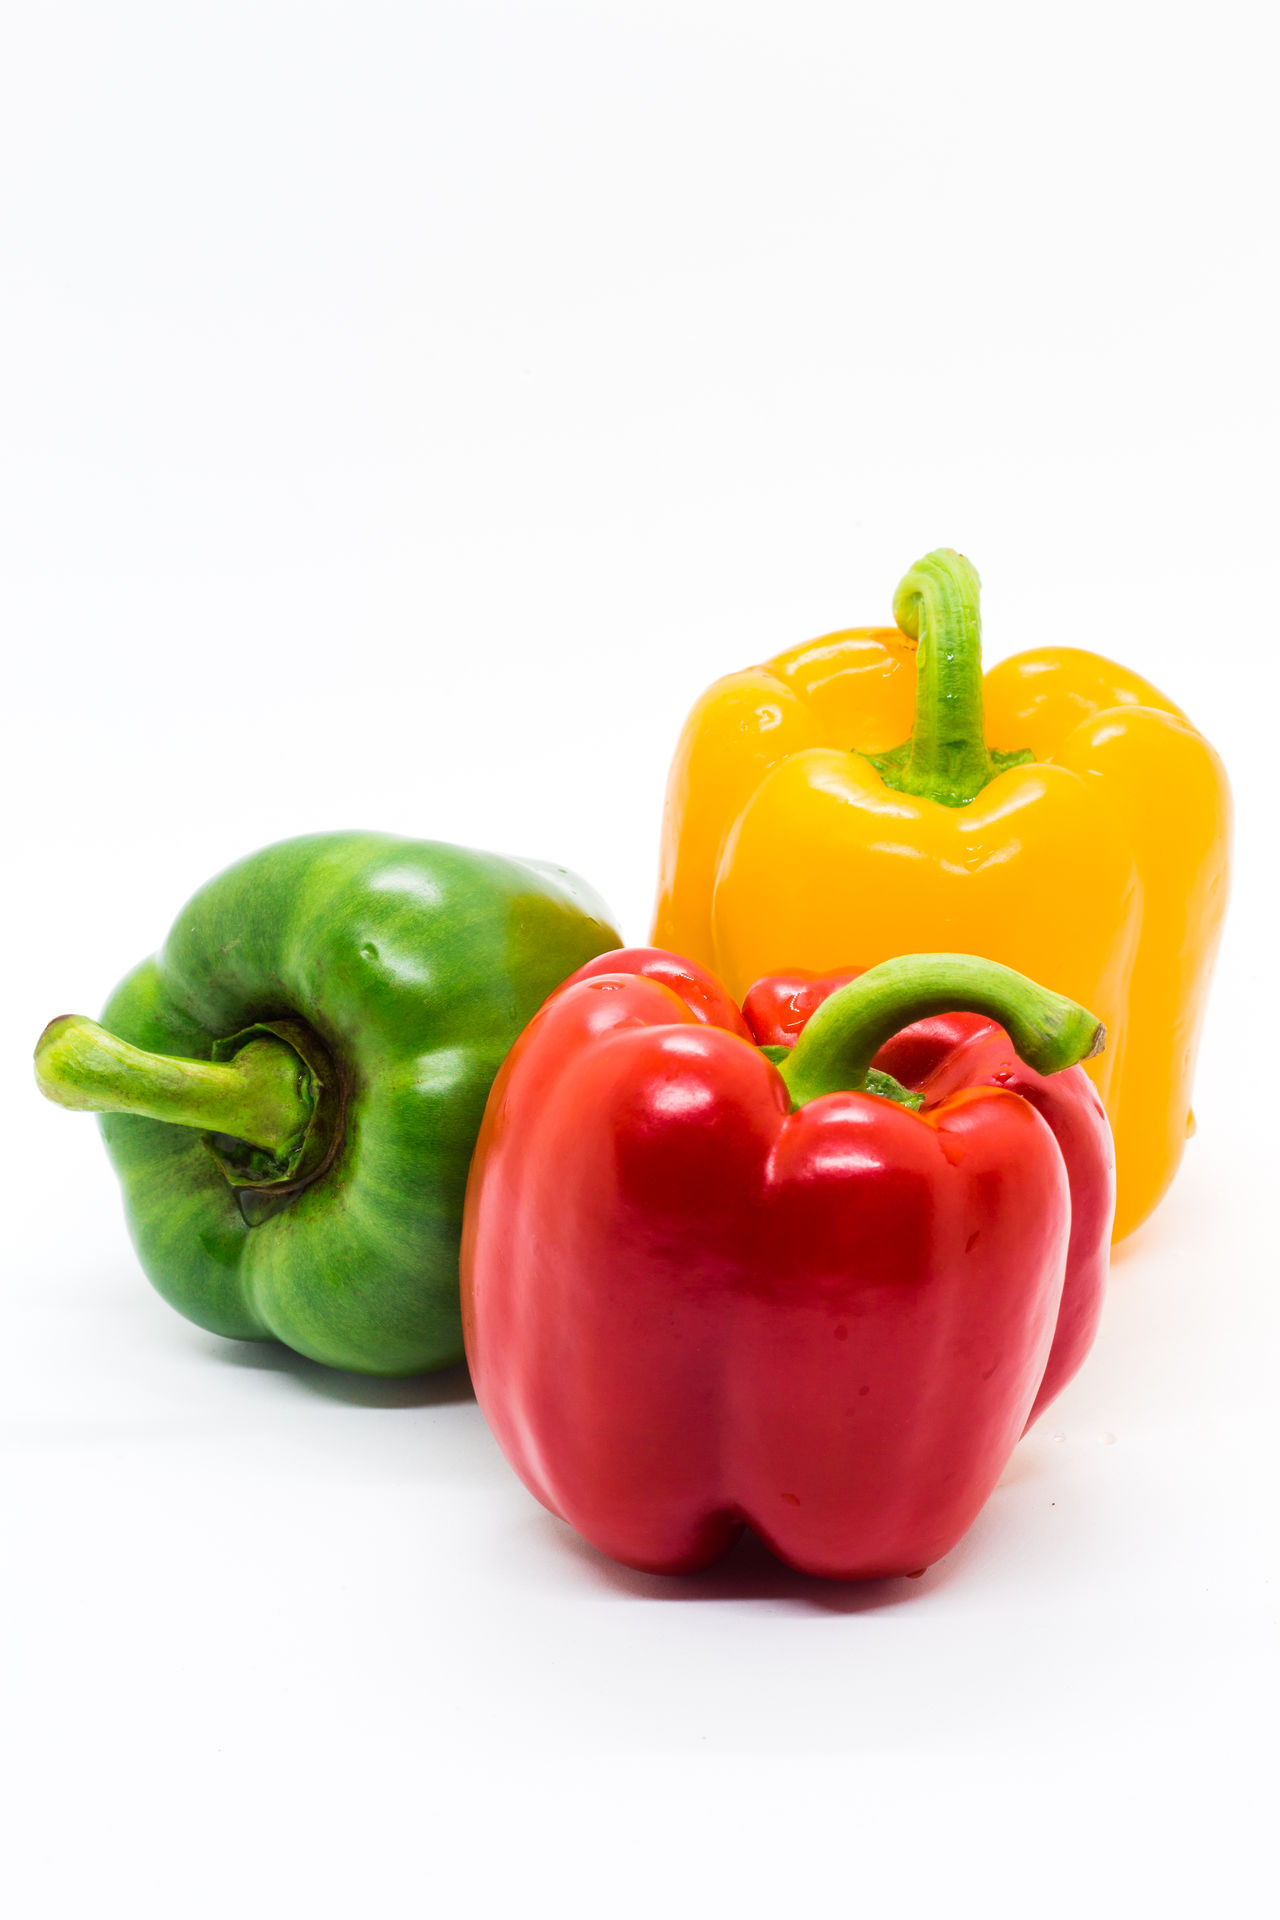 Bell Pepper Close-up Food Freshness Green Bell Pepper Healthy Eating Multi Colored No People Red Red Bell Pepper Studio Shot Variation Vegetable White Background